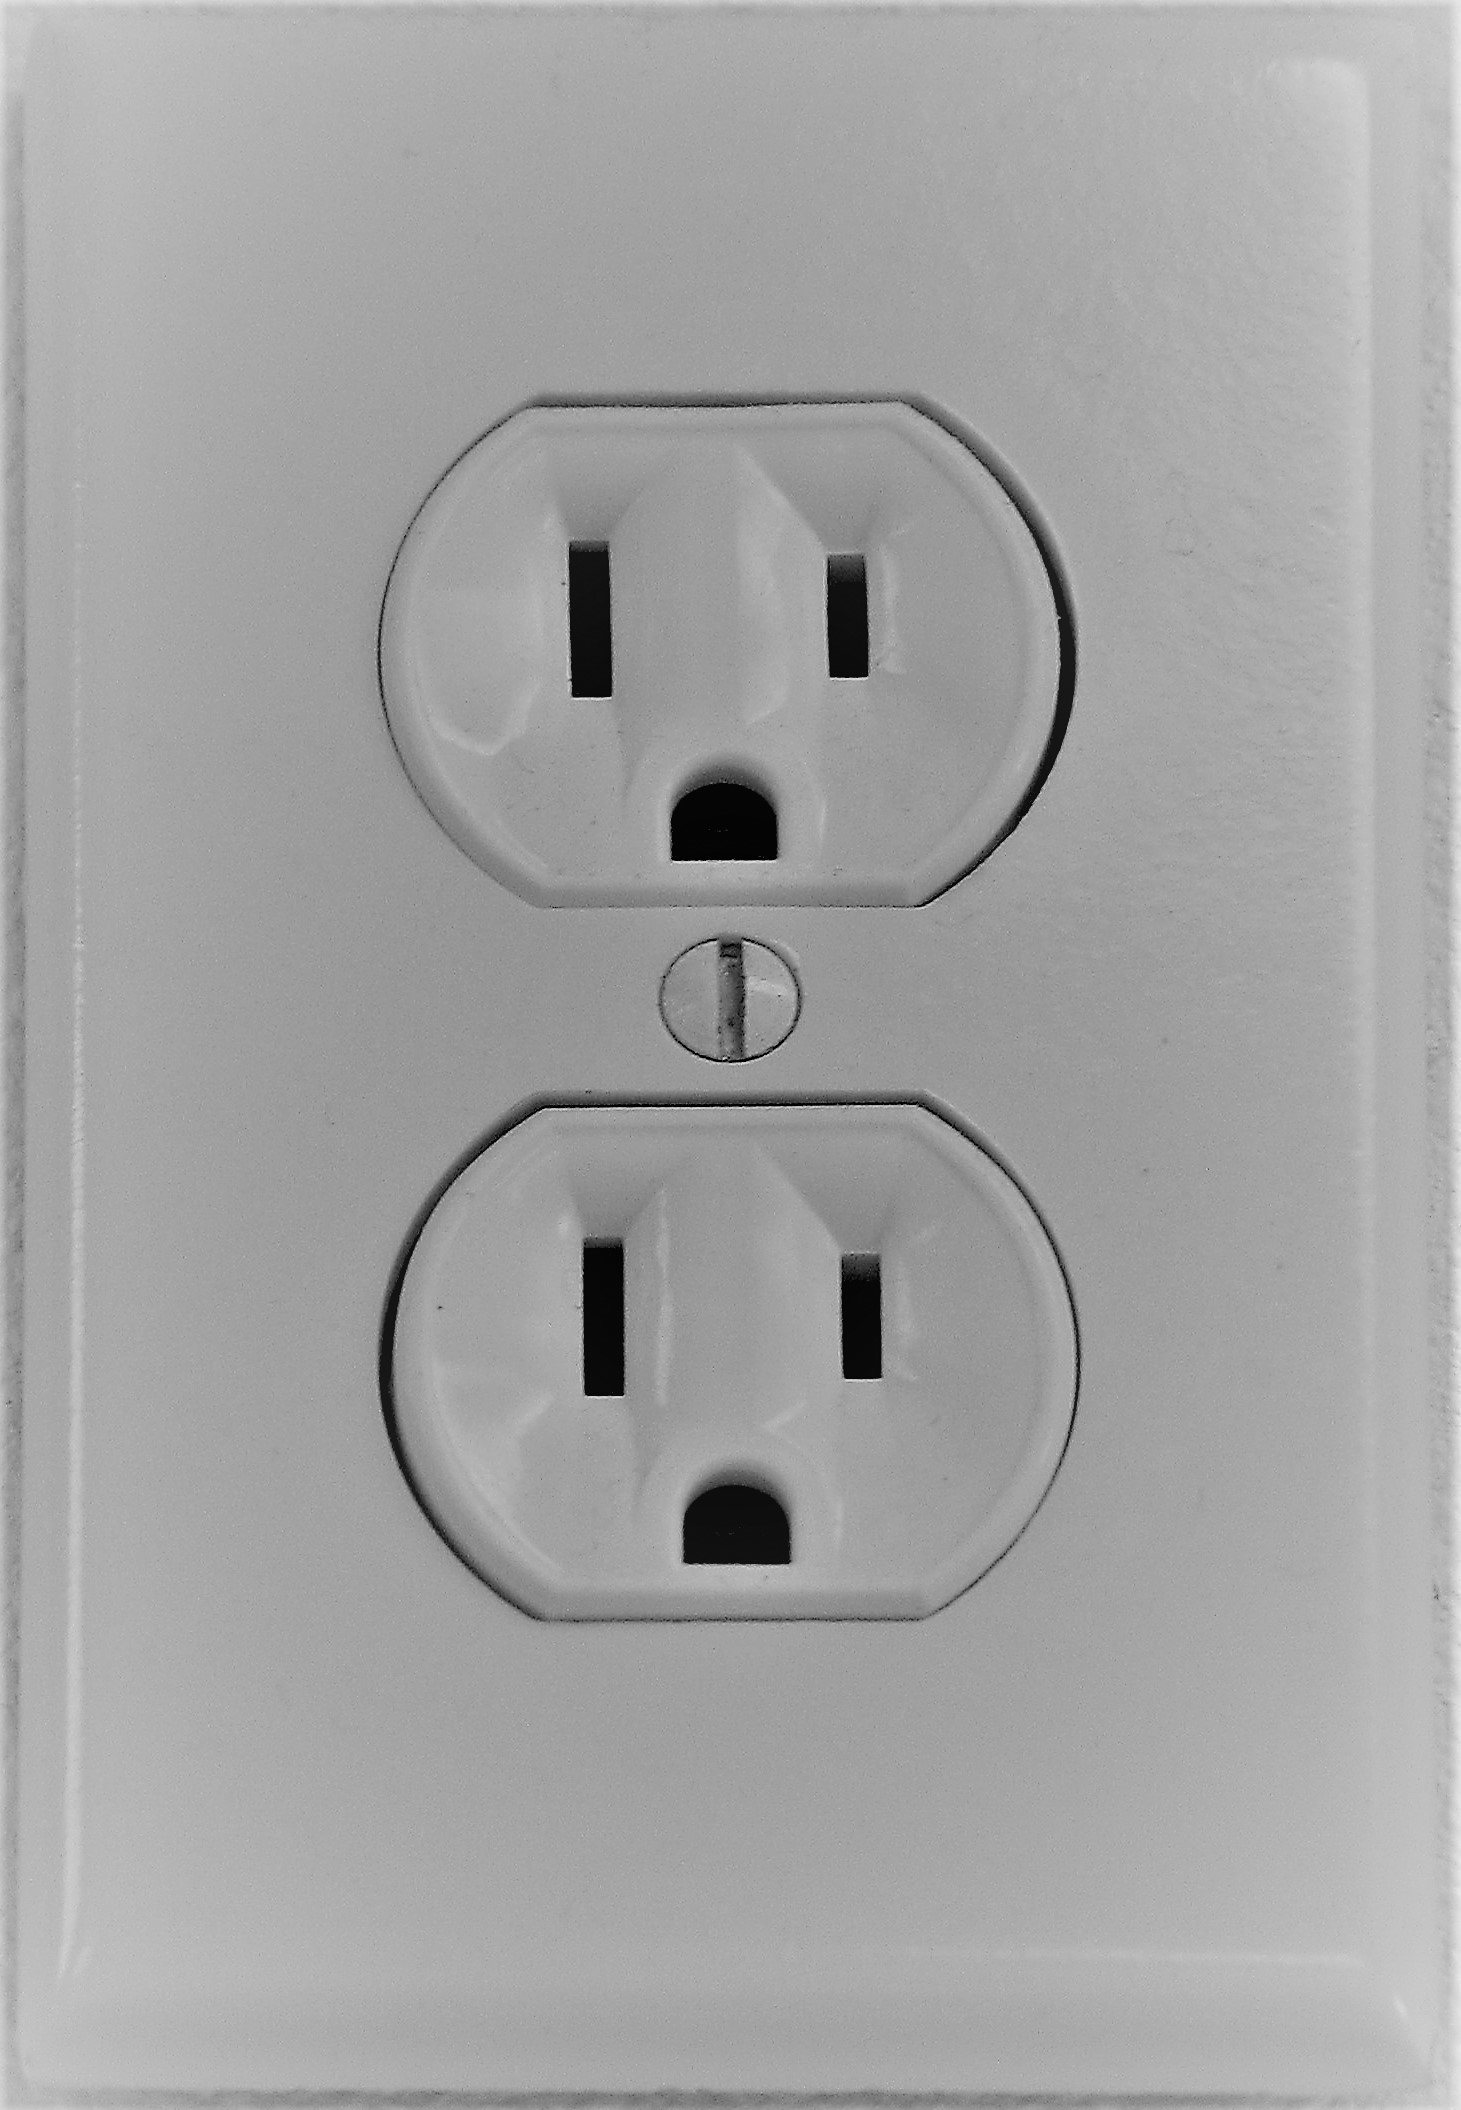 Unsafe Electrical Outlets? How Can You Tell? | Cooper Electrical ...